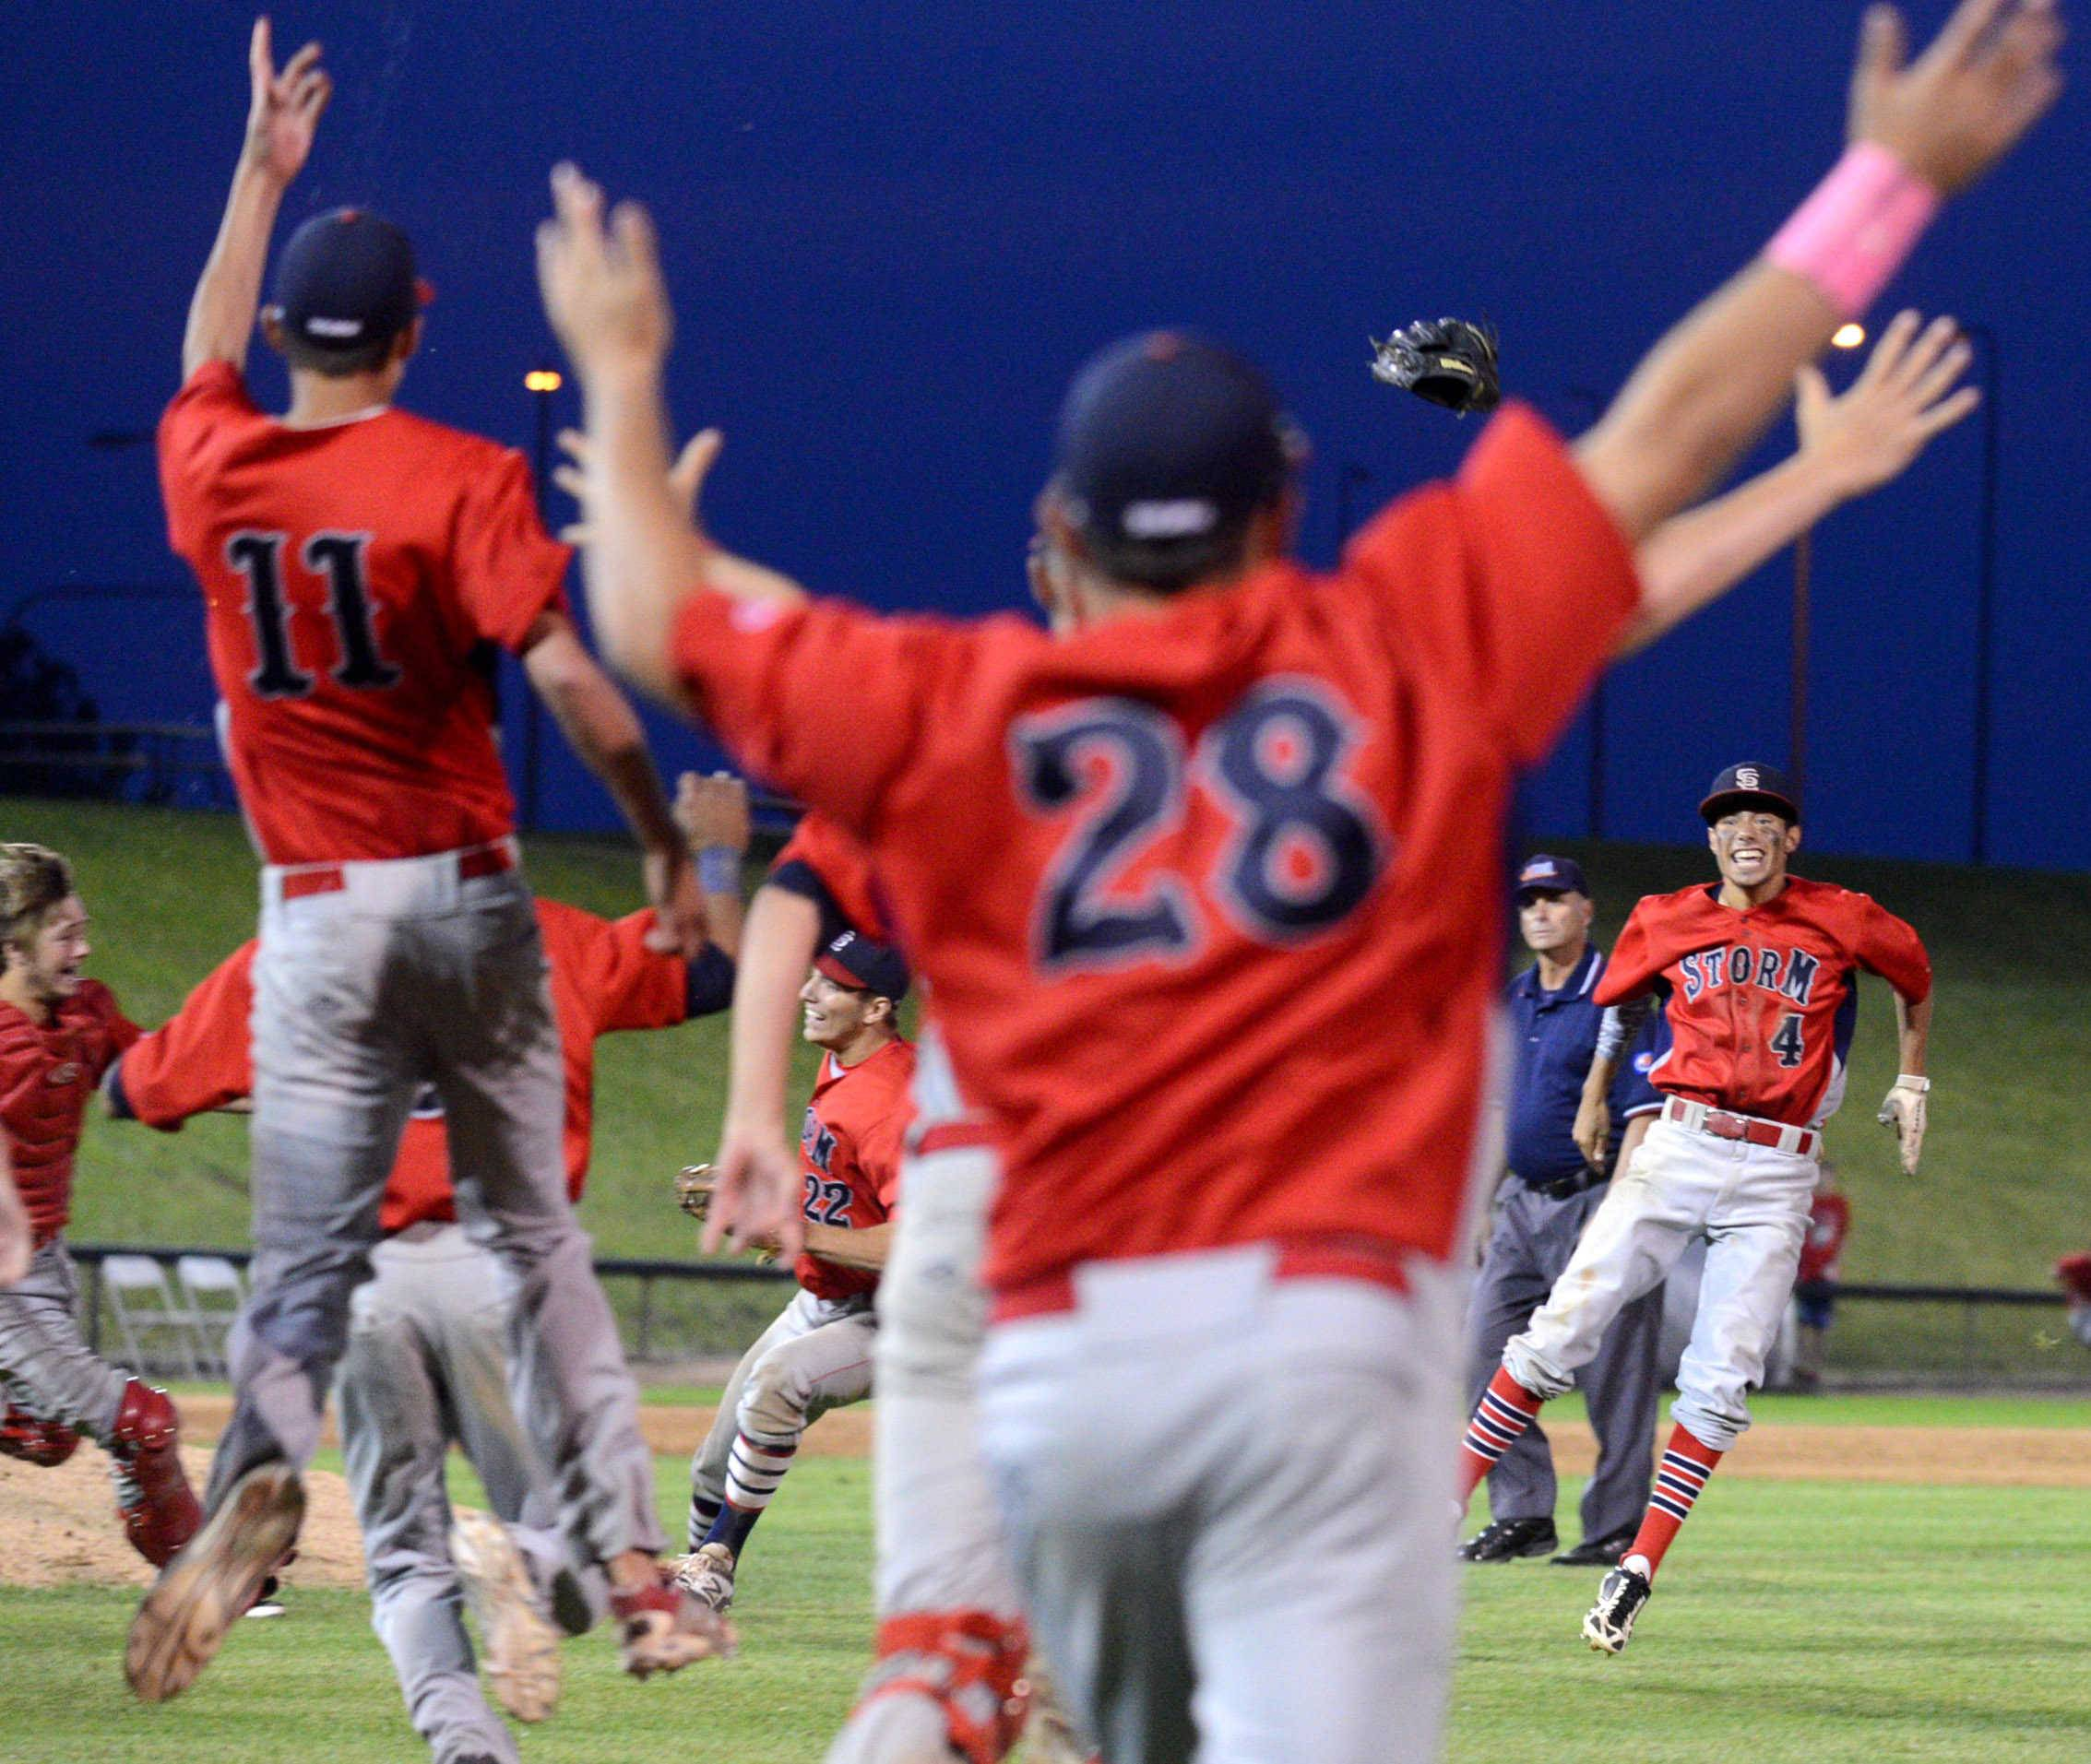 South Elgin's players celebrate after the final out of a 7-6 win over Evanston during the Class 4A supersectional baseball game at Boomers Stadium in Schaumburg on Monday night.